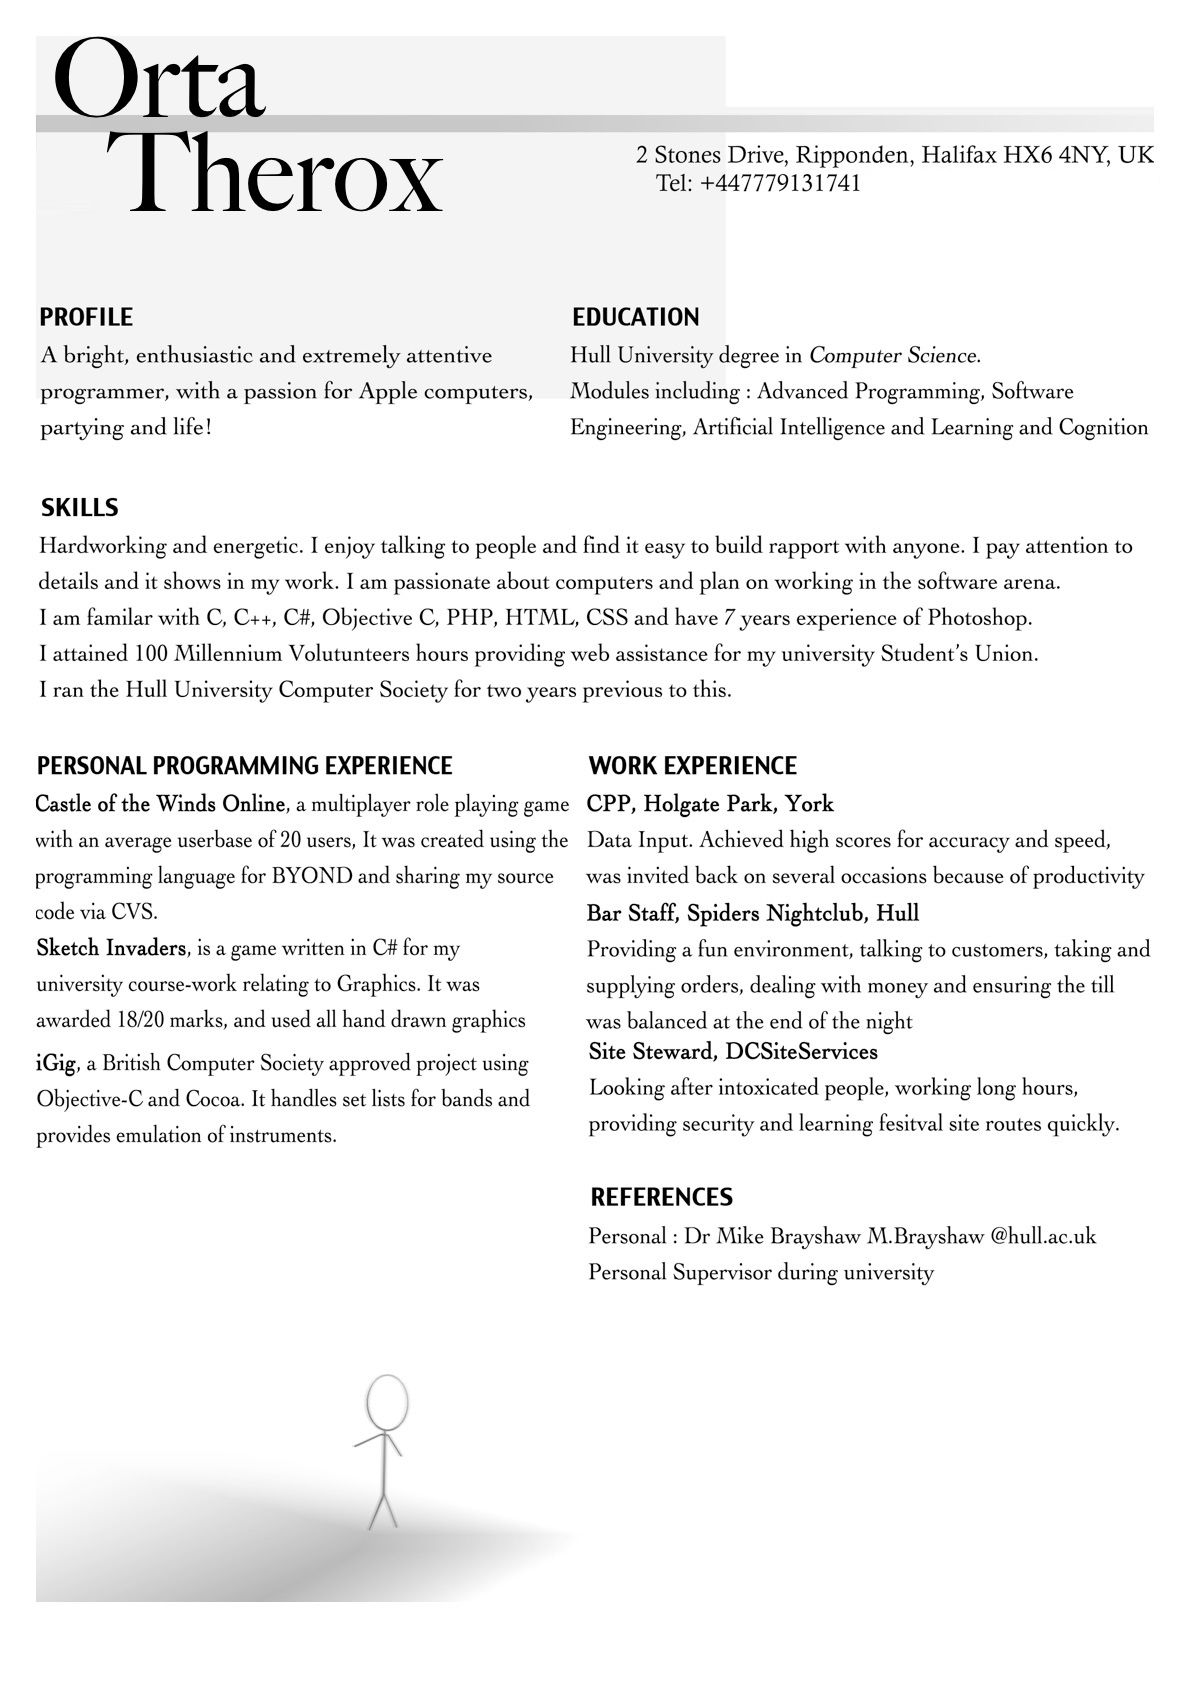 Resumes For Jobs Interviewing Applying And Getting Your First Job In Ios  Artsy